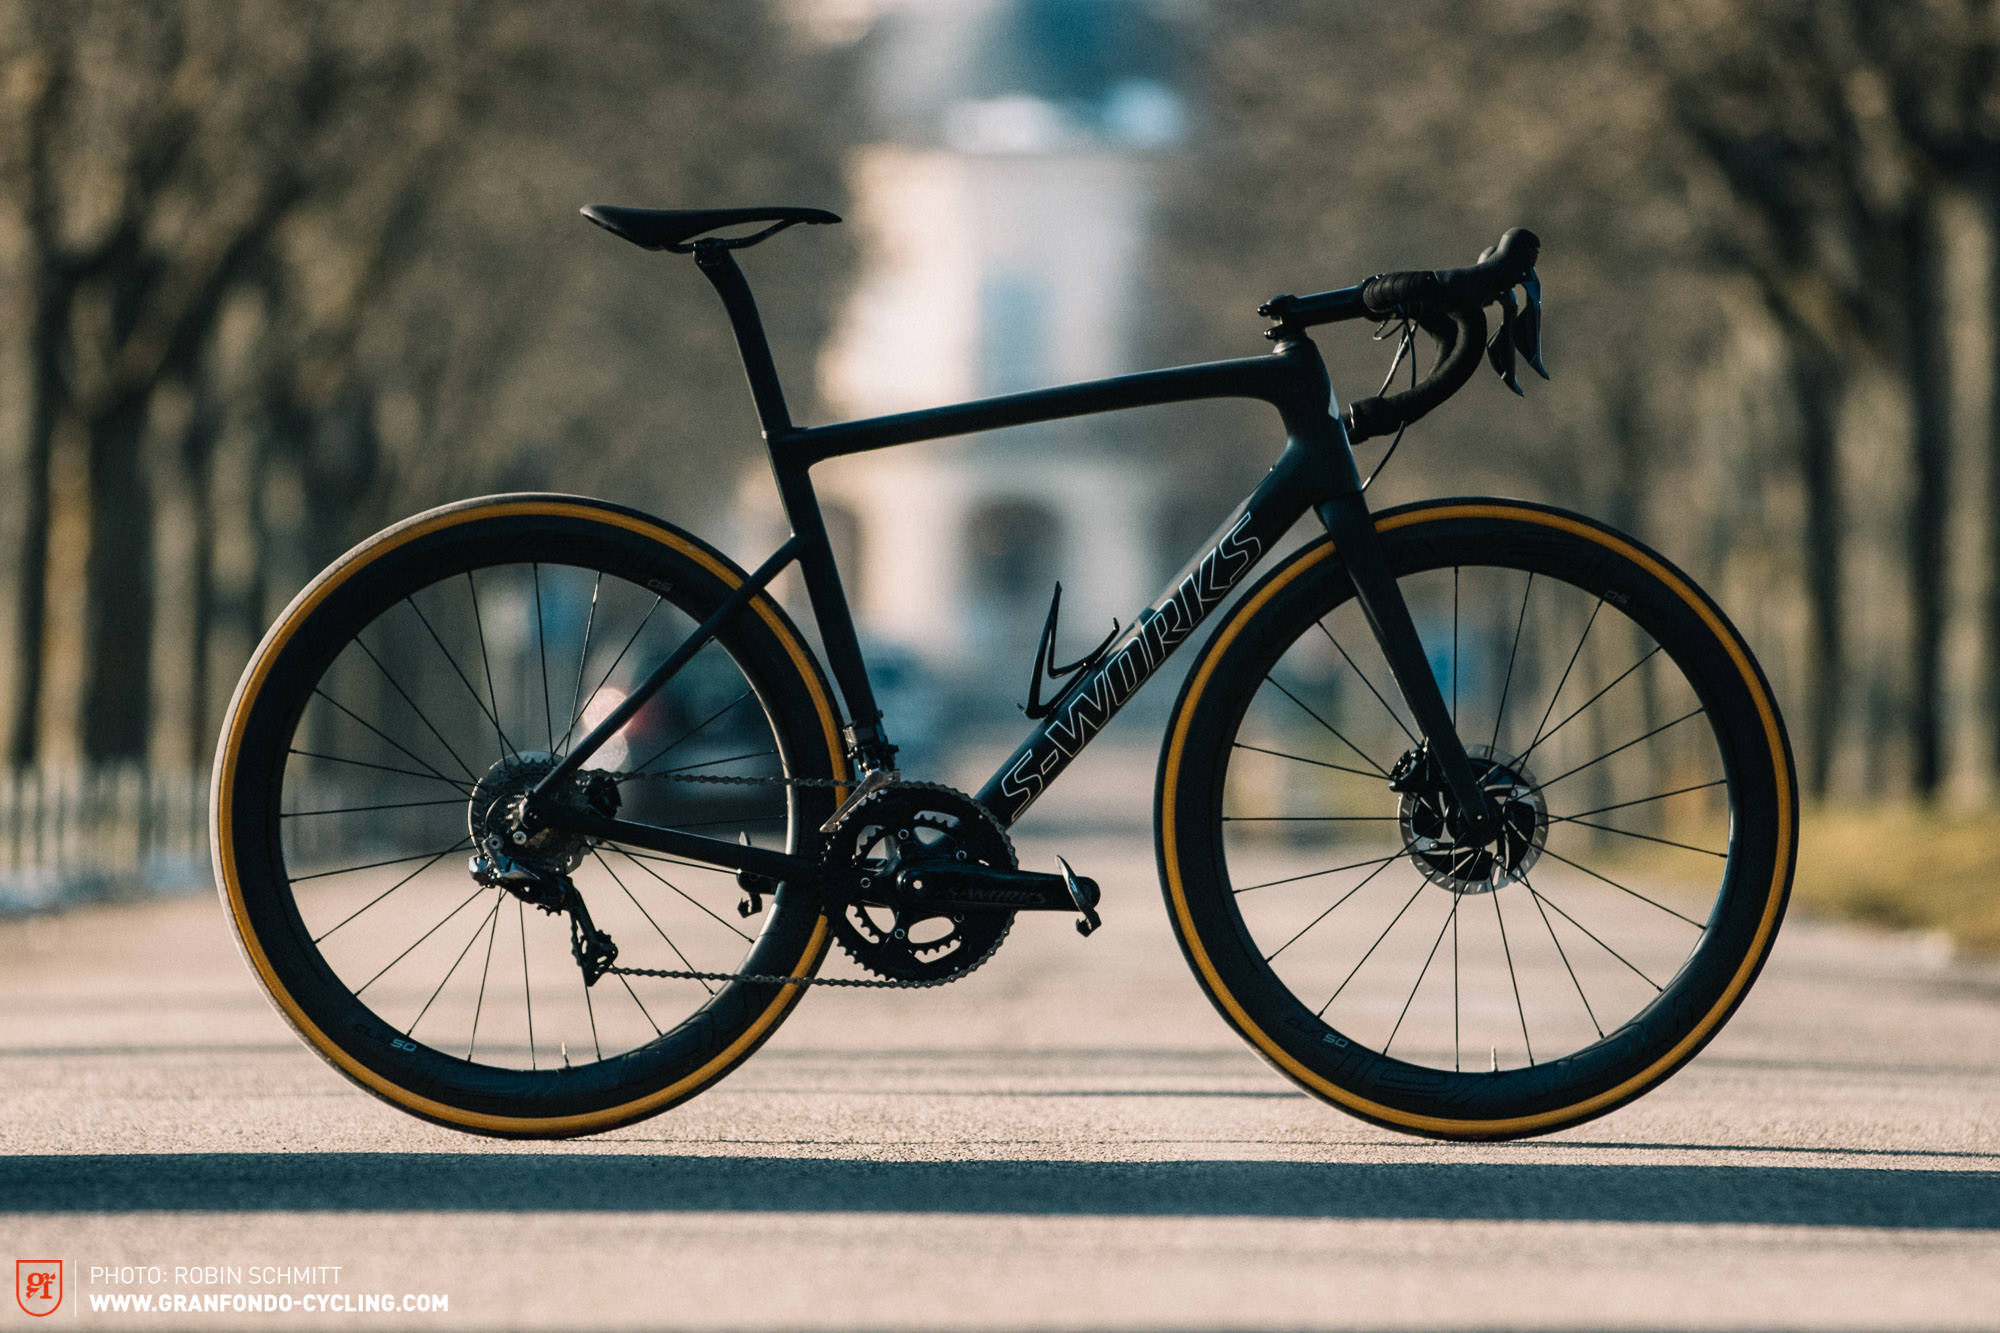 50c7c8359ed First Ride Review: Specialized S-Works Tarmac Disc 2018 – Disc vs. Rim  Brakes